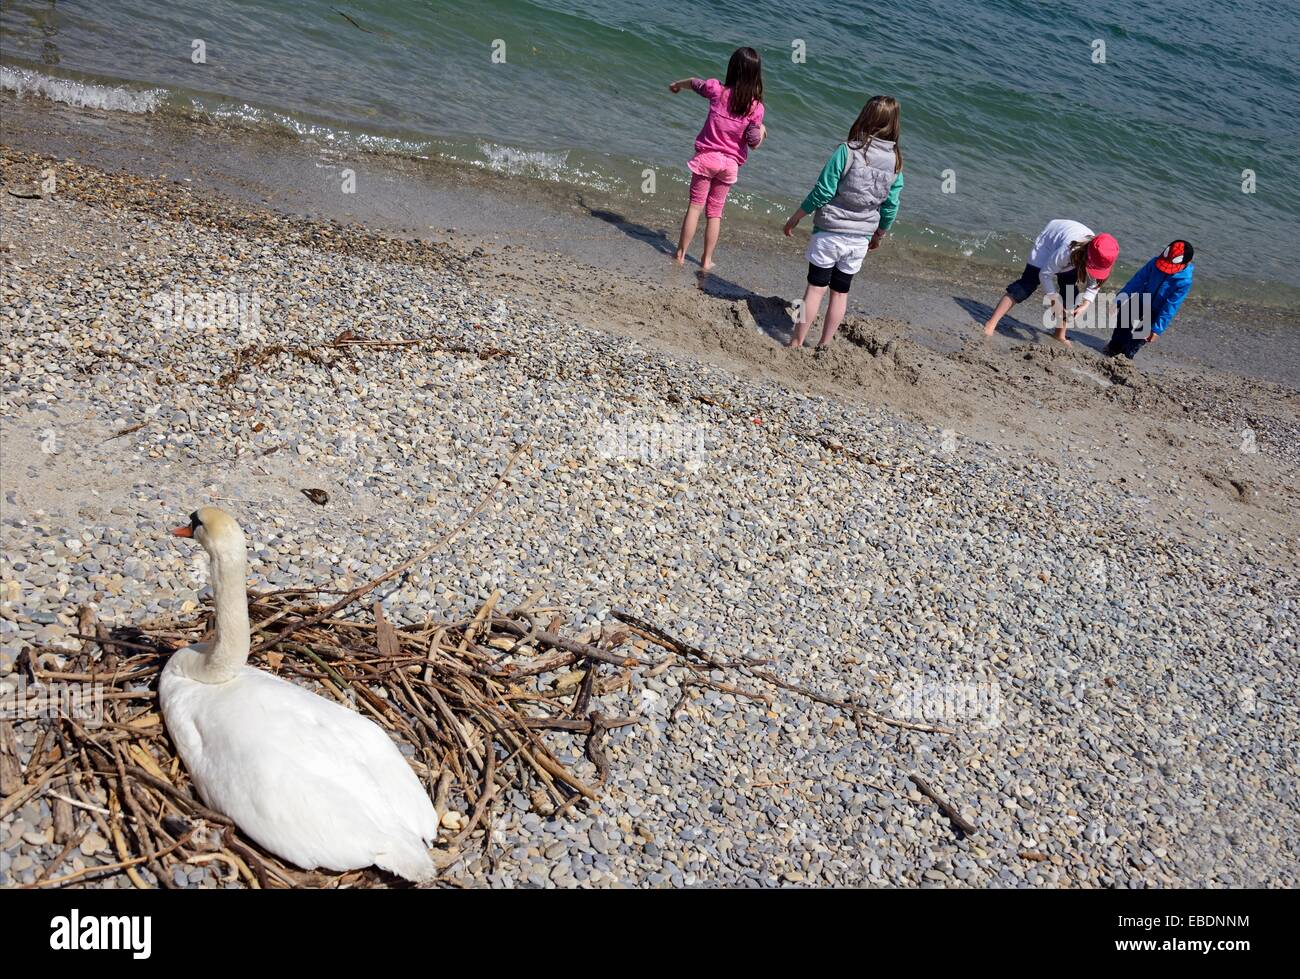 children plying at the beach, mother swan sitting in nest, Lake Geneva shore, Paquis plage, Paquis beach, Lac Leman, - Stock Image